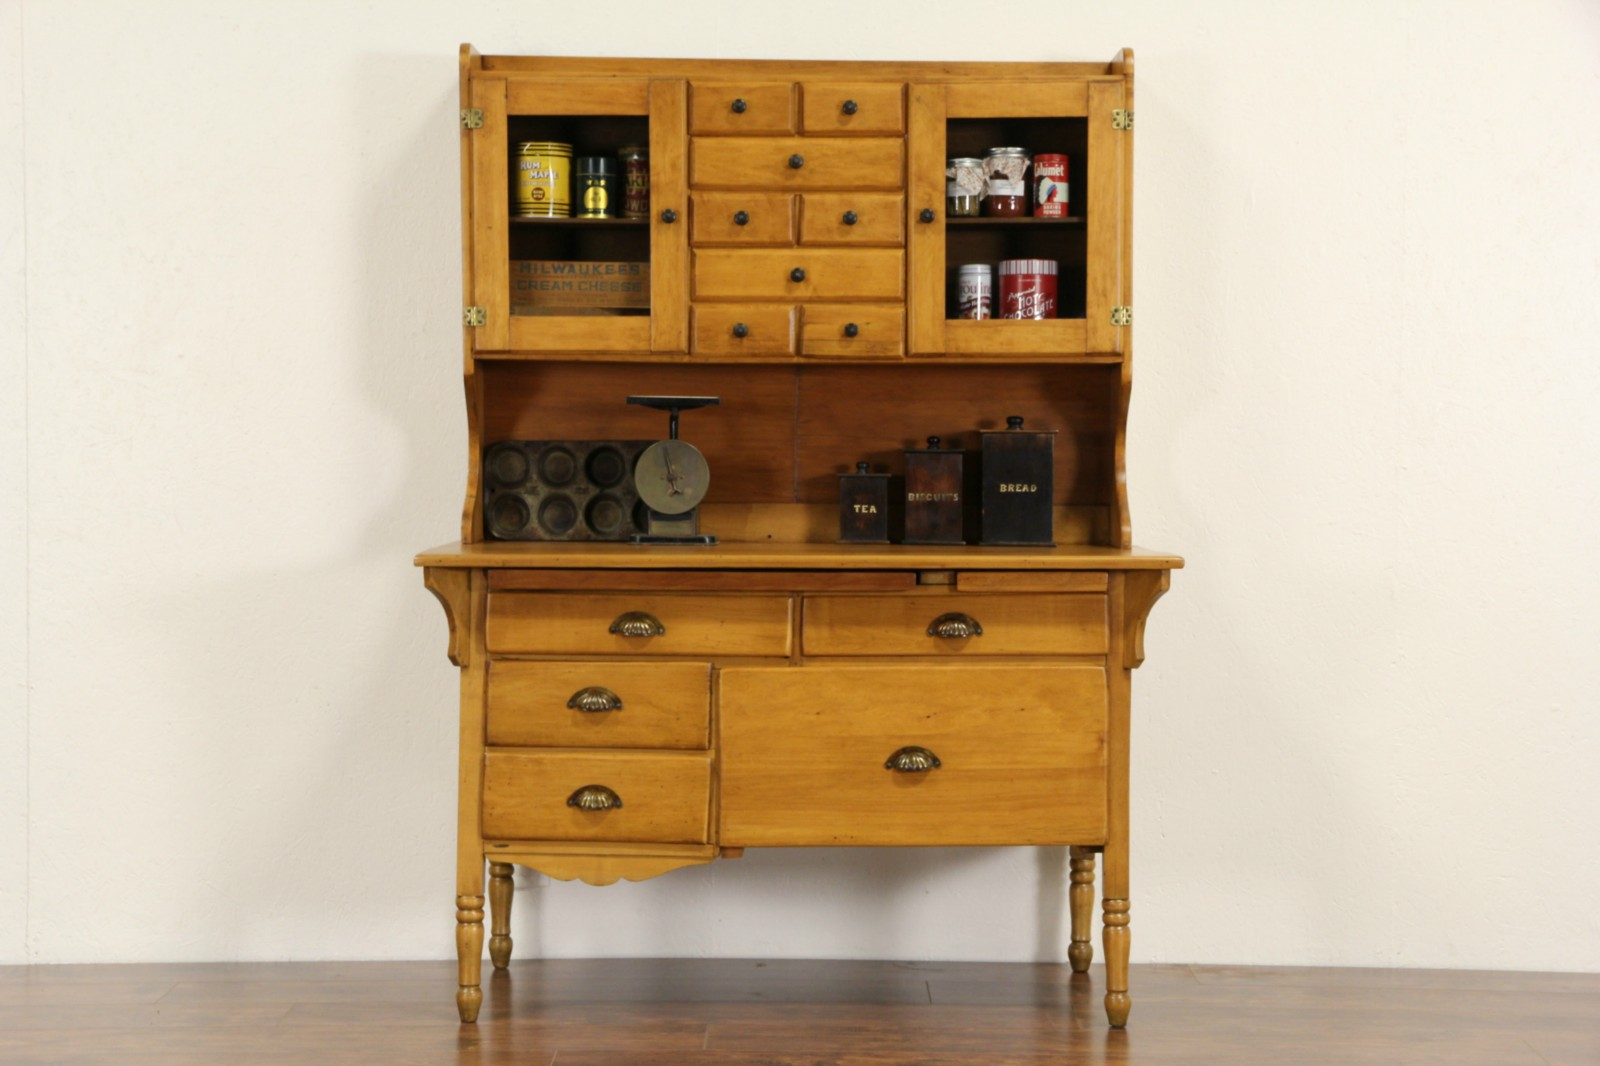 SOLD - Country Pine & Maple Baker Cabinet, 1890's Antique ...